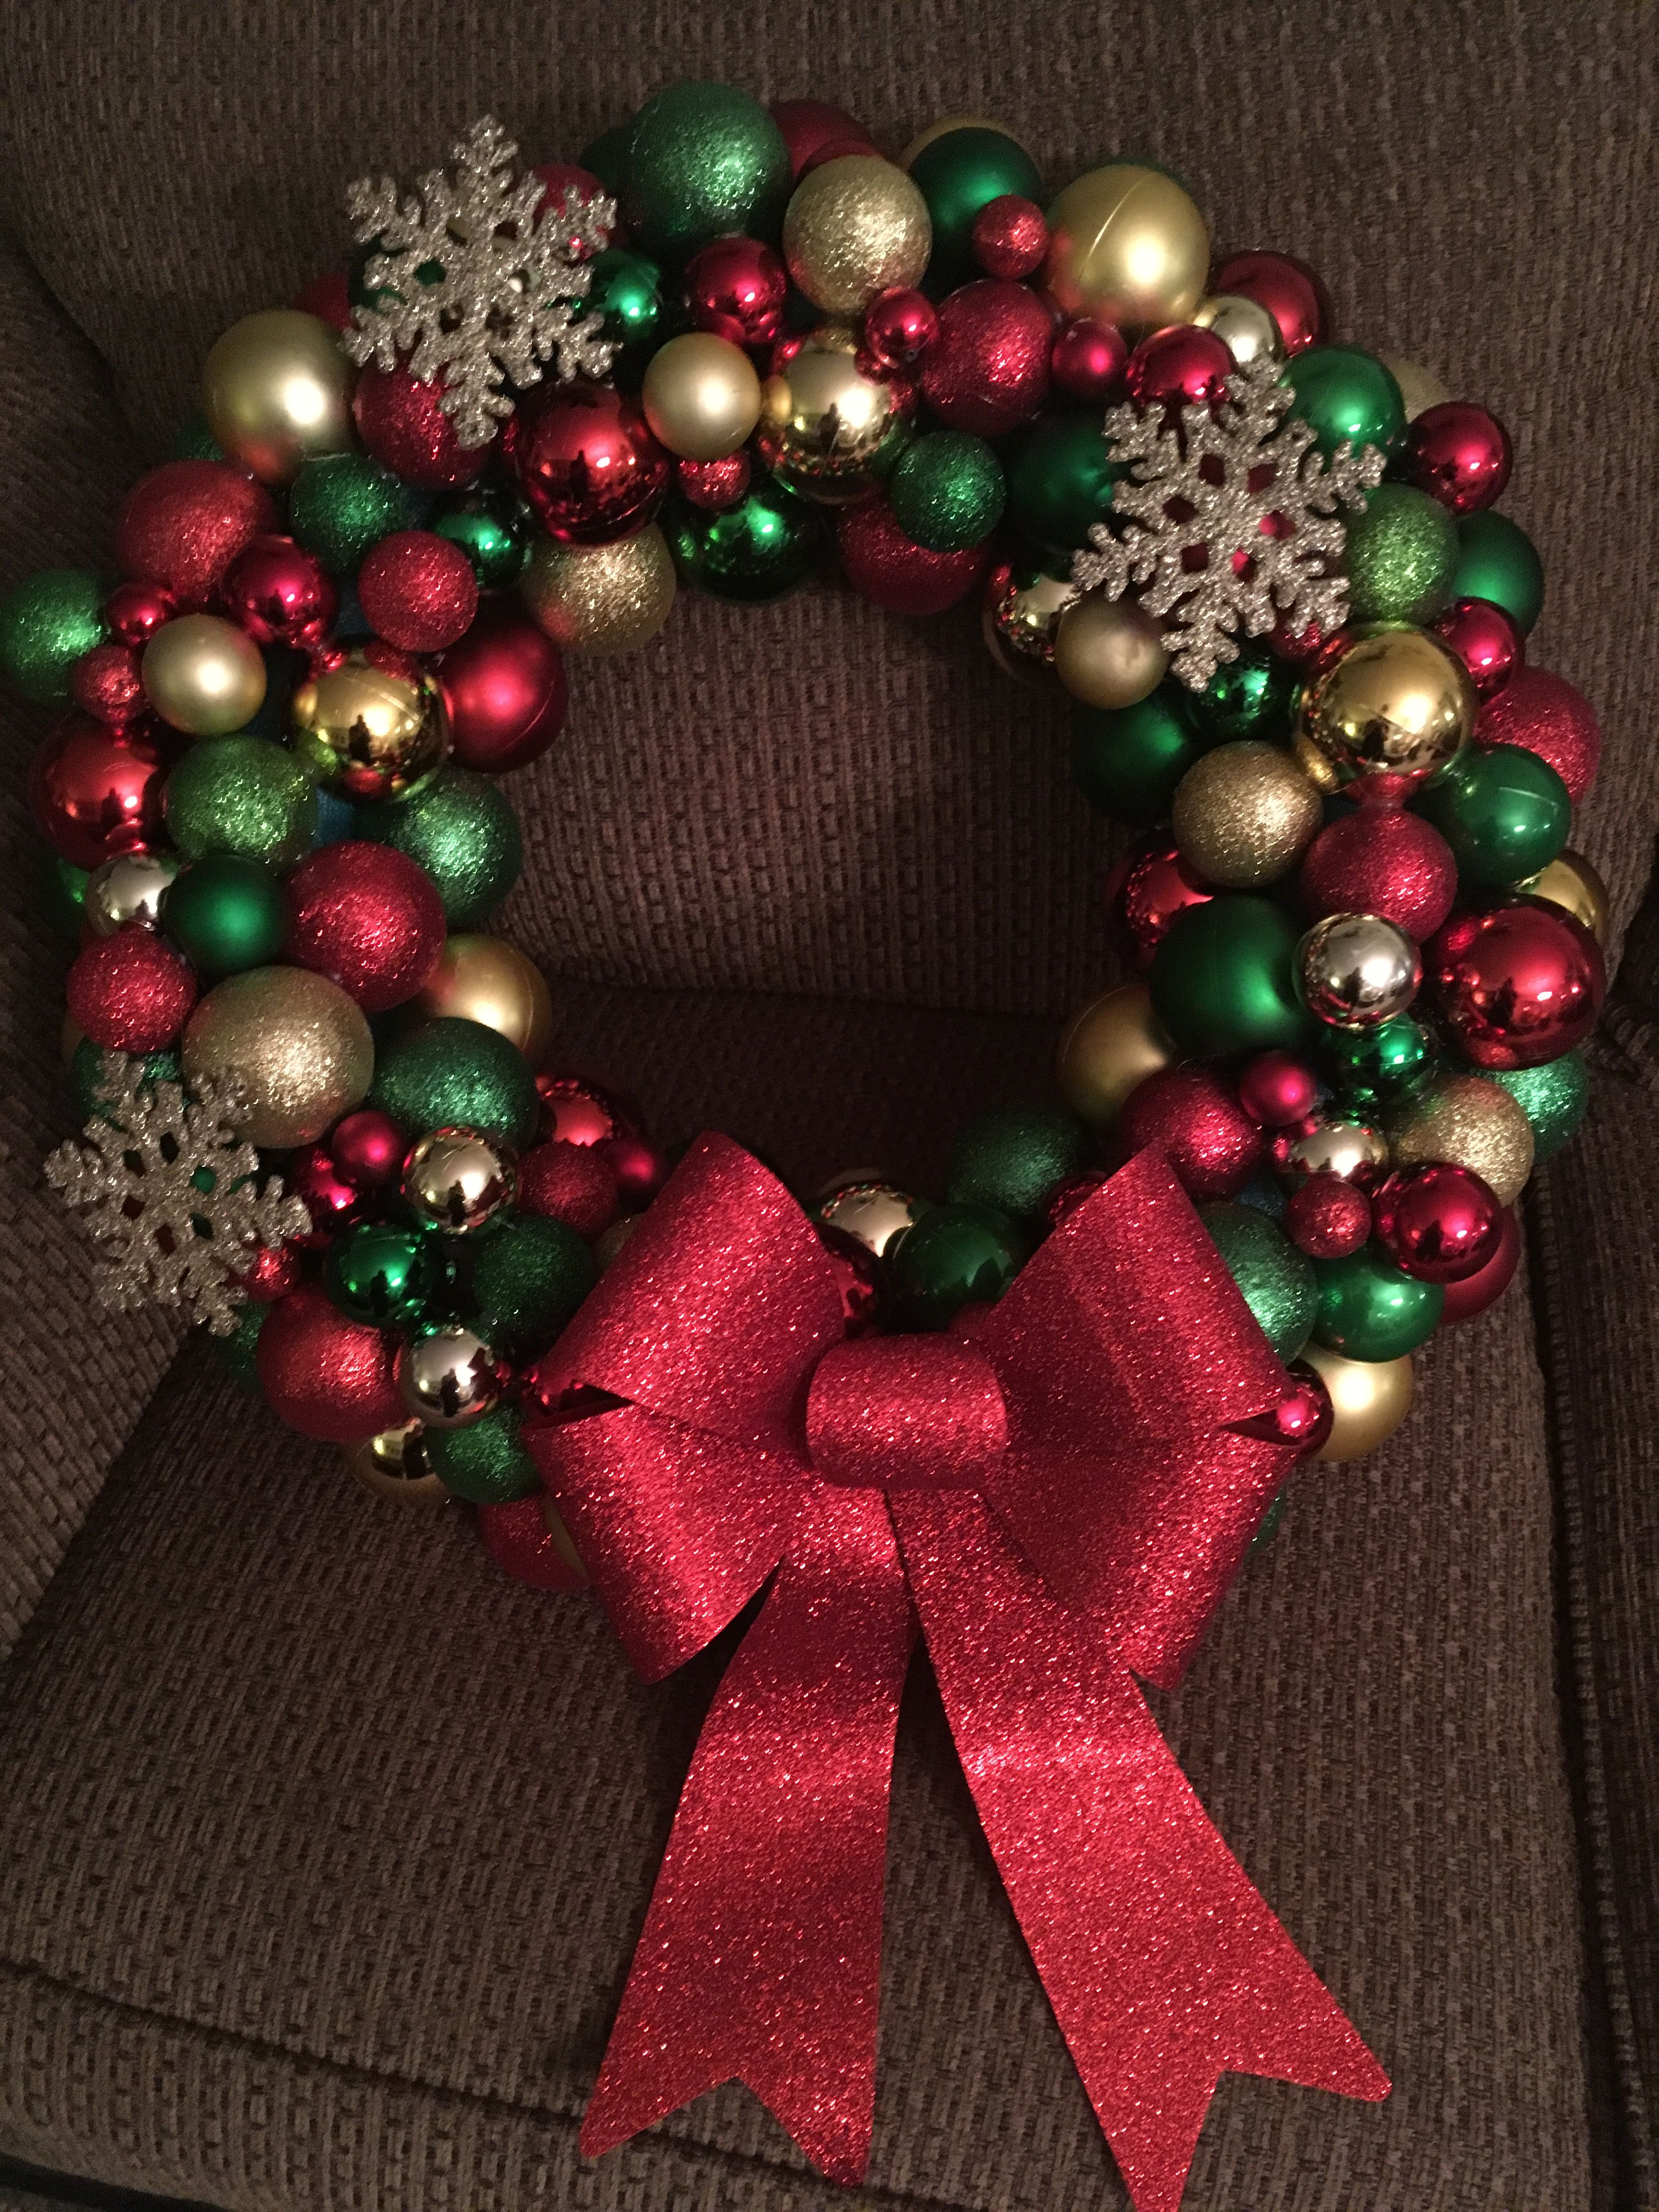 Diy Christmas Ball Wreath Using A Pool Noodle And Ornaments From The Dollar Store Christmas Decorations Storing Christmas Decorations Diy Christmas Ball